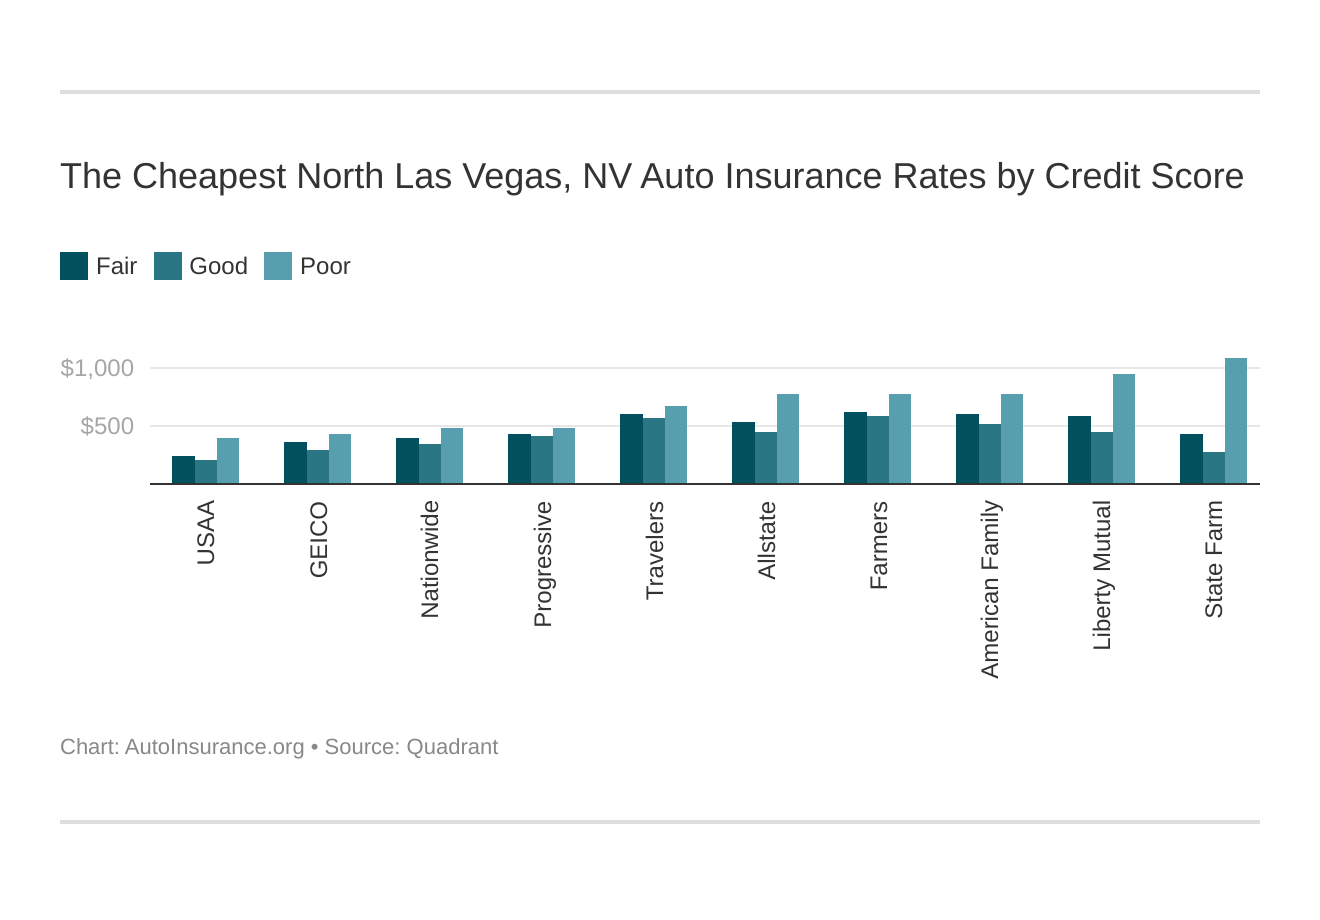 The Cheapest North Las Vegas, NV Auto Insurance Rates by Credit Score